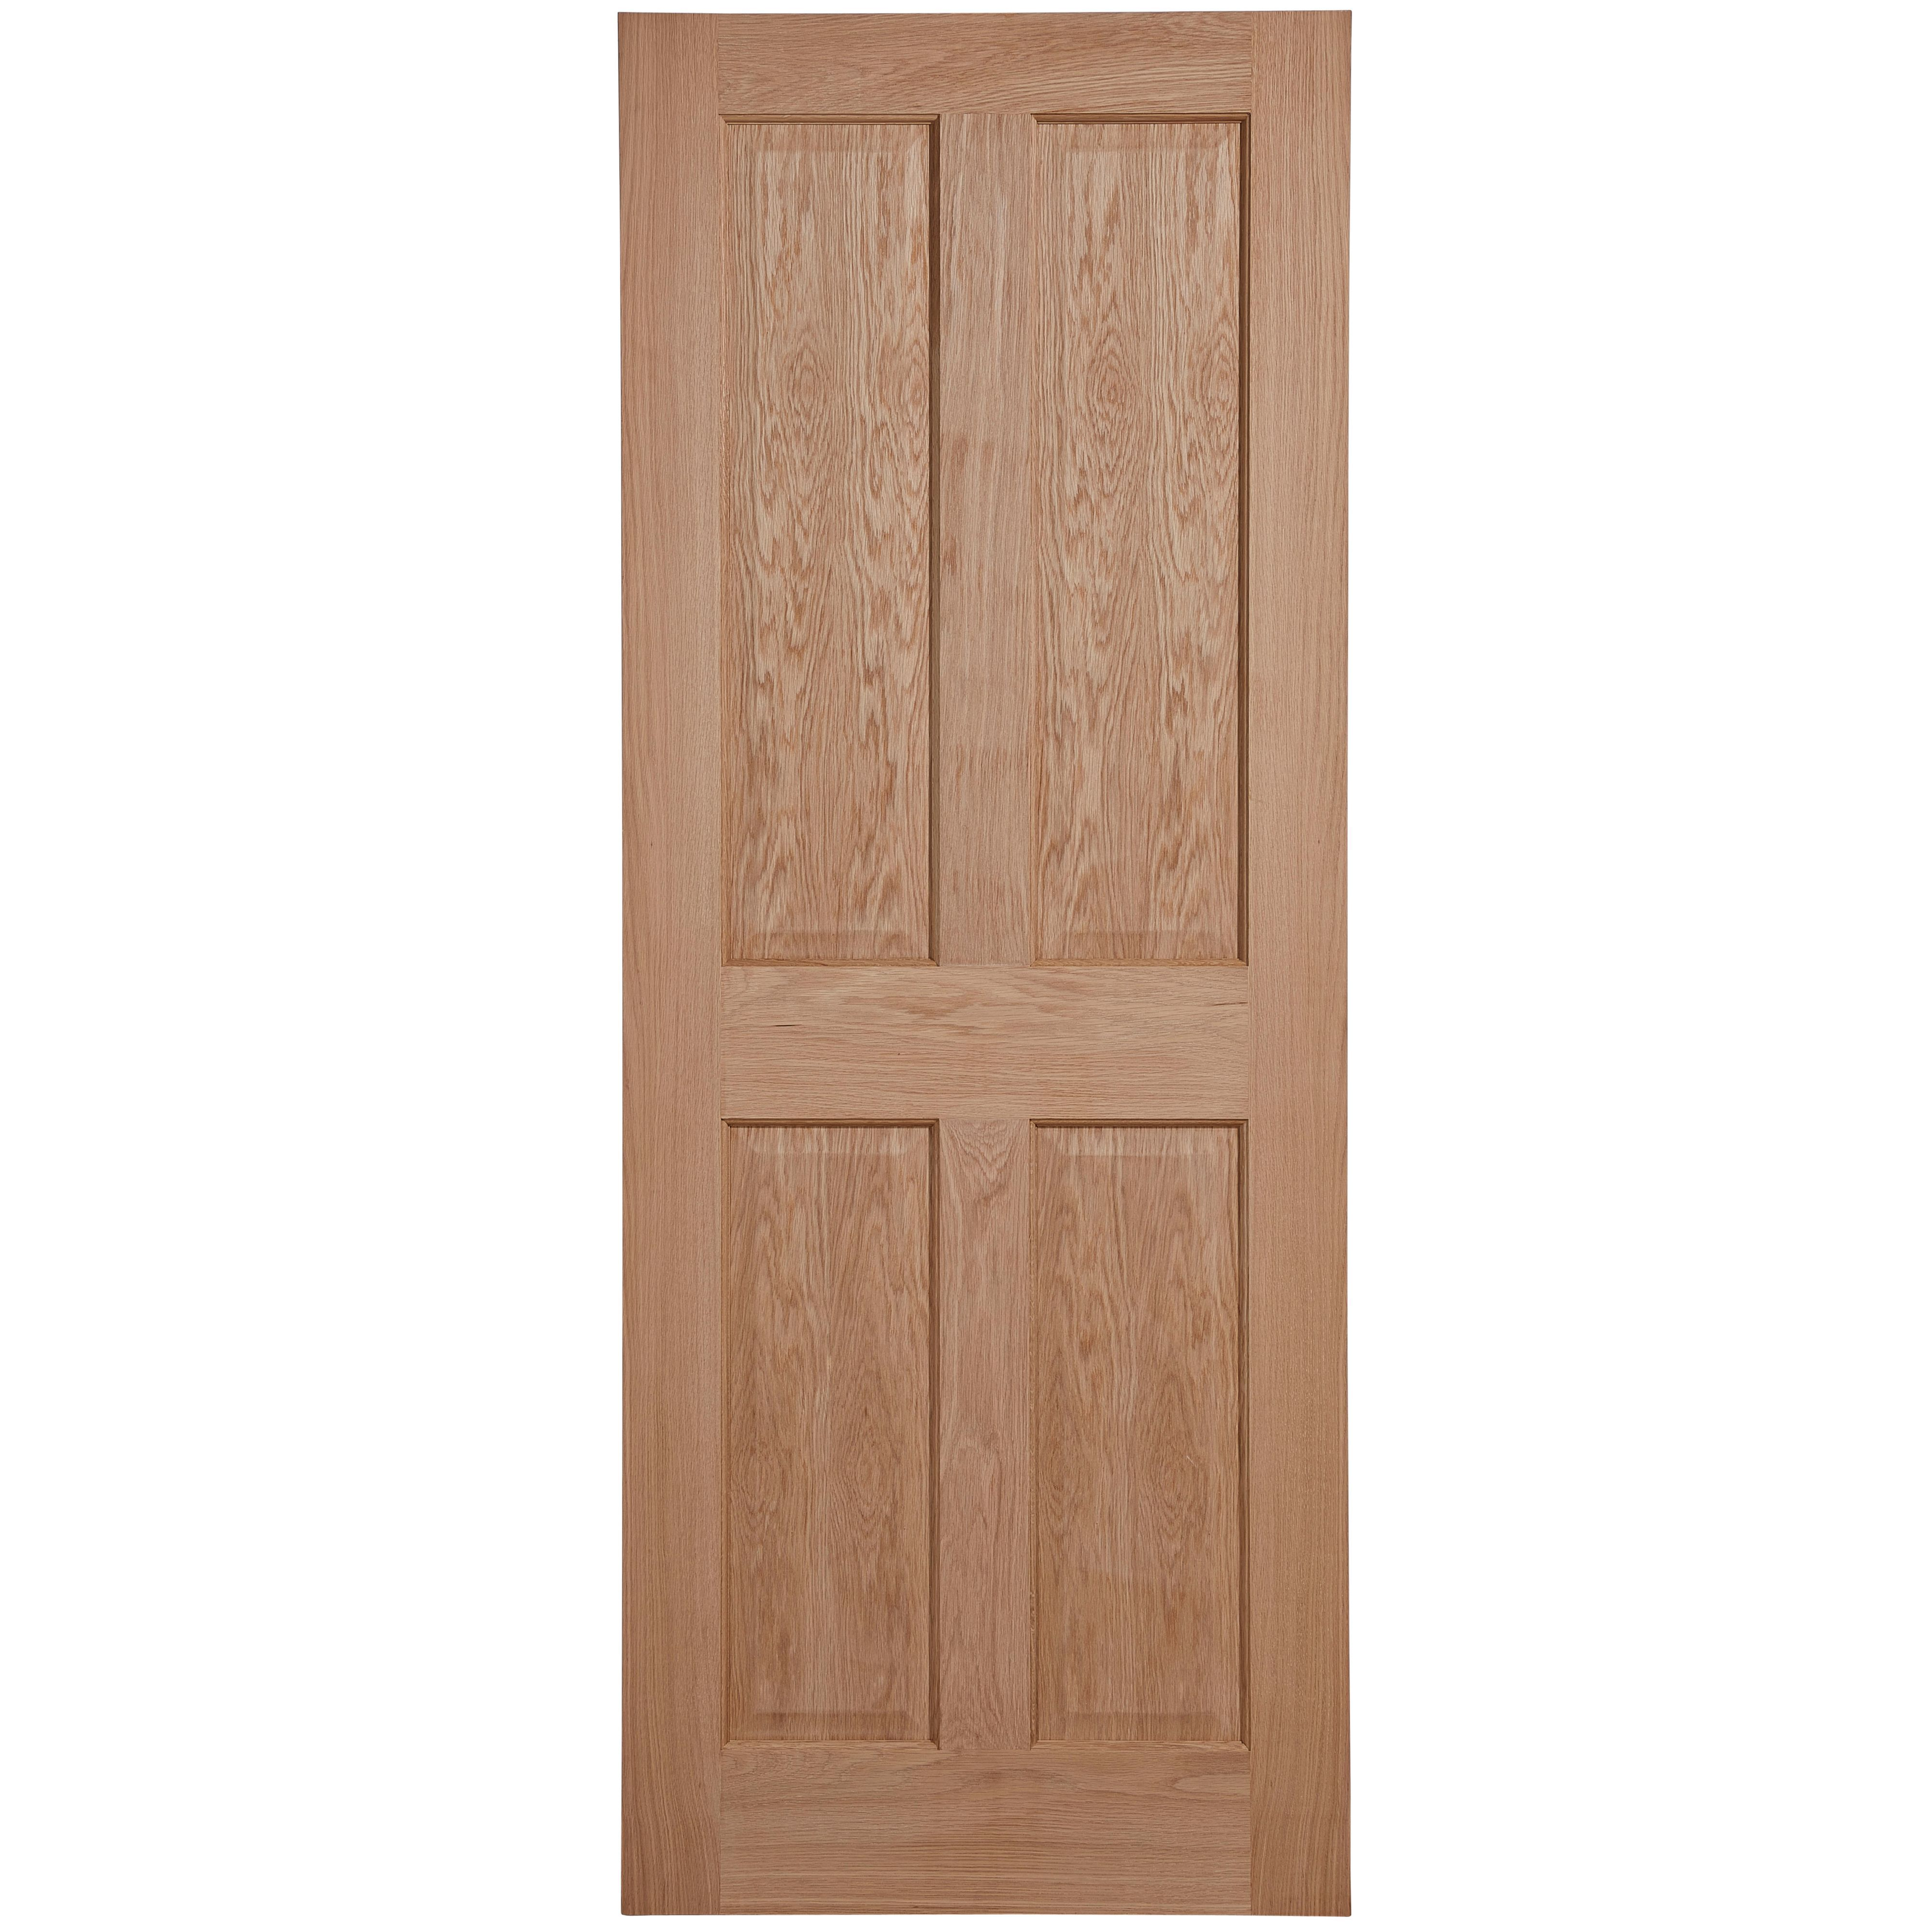 4 Panel Oak Veneer Unglazed Internal Standard Door, (h)1981mm (w)762mm